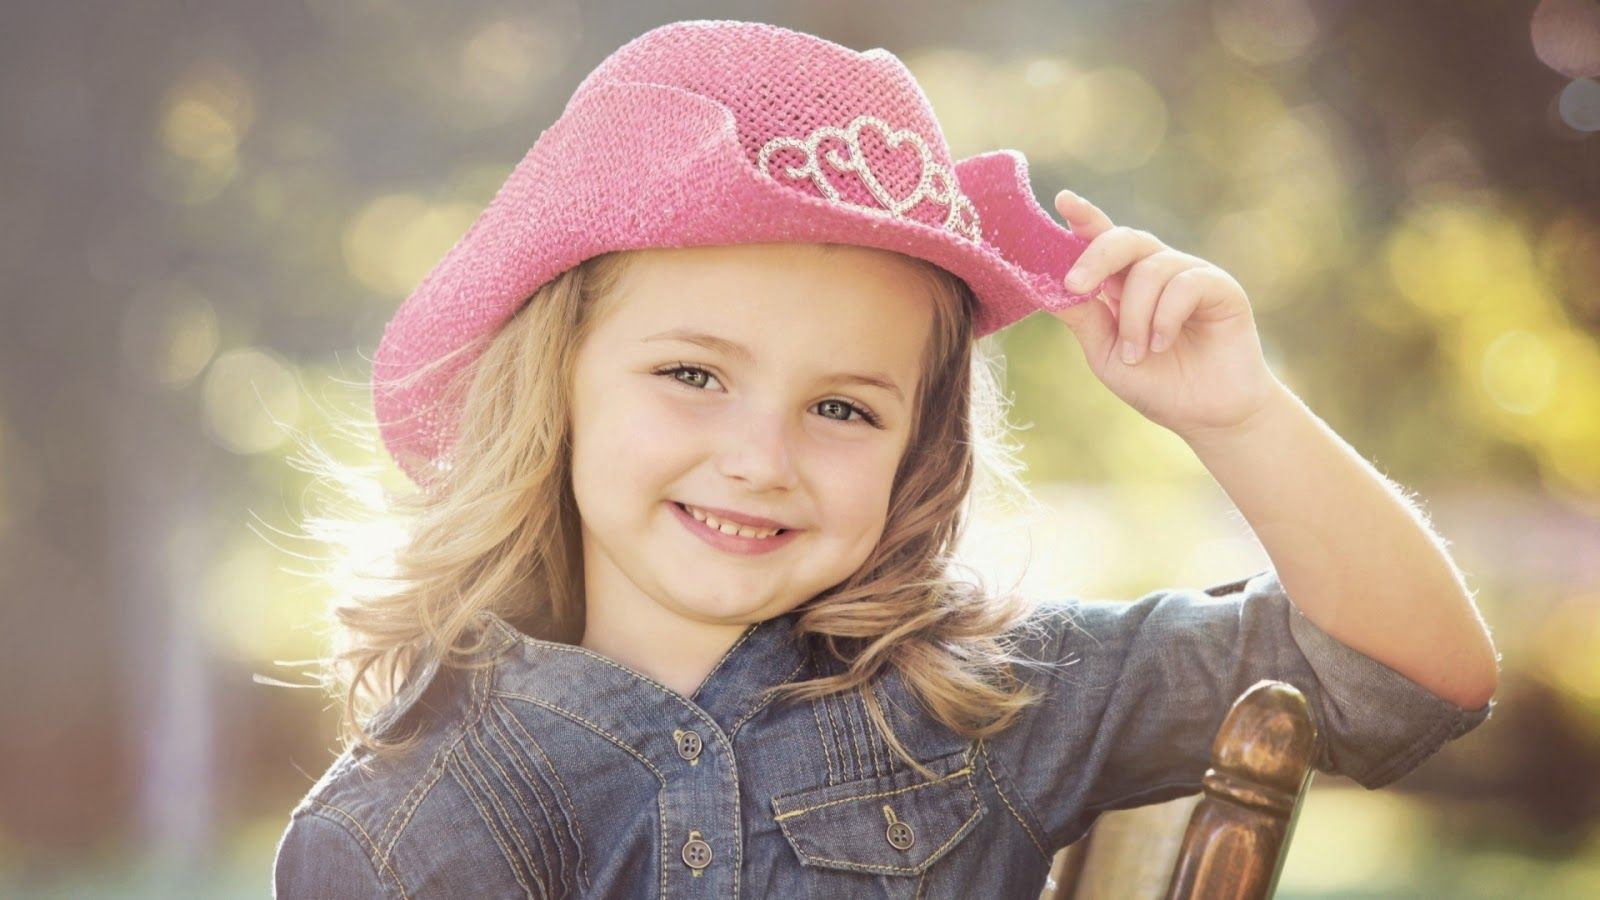 Hello Friends! For You and Your Friends | Cute baby girl wallpaper, Baby  girl wallpaper, Cute baby girl pictures